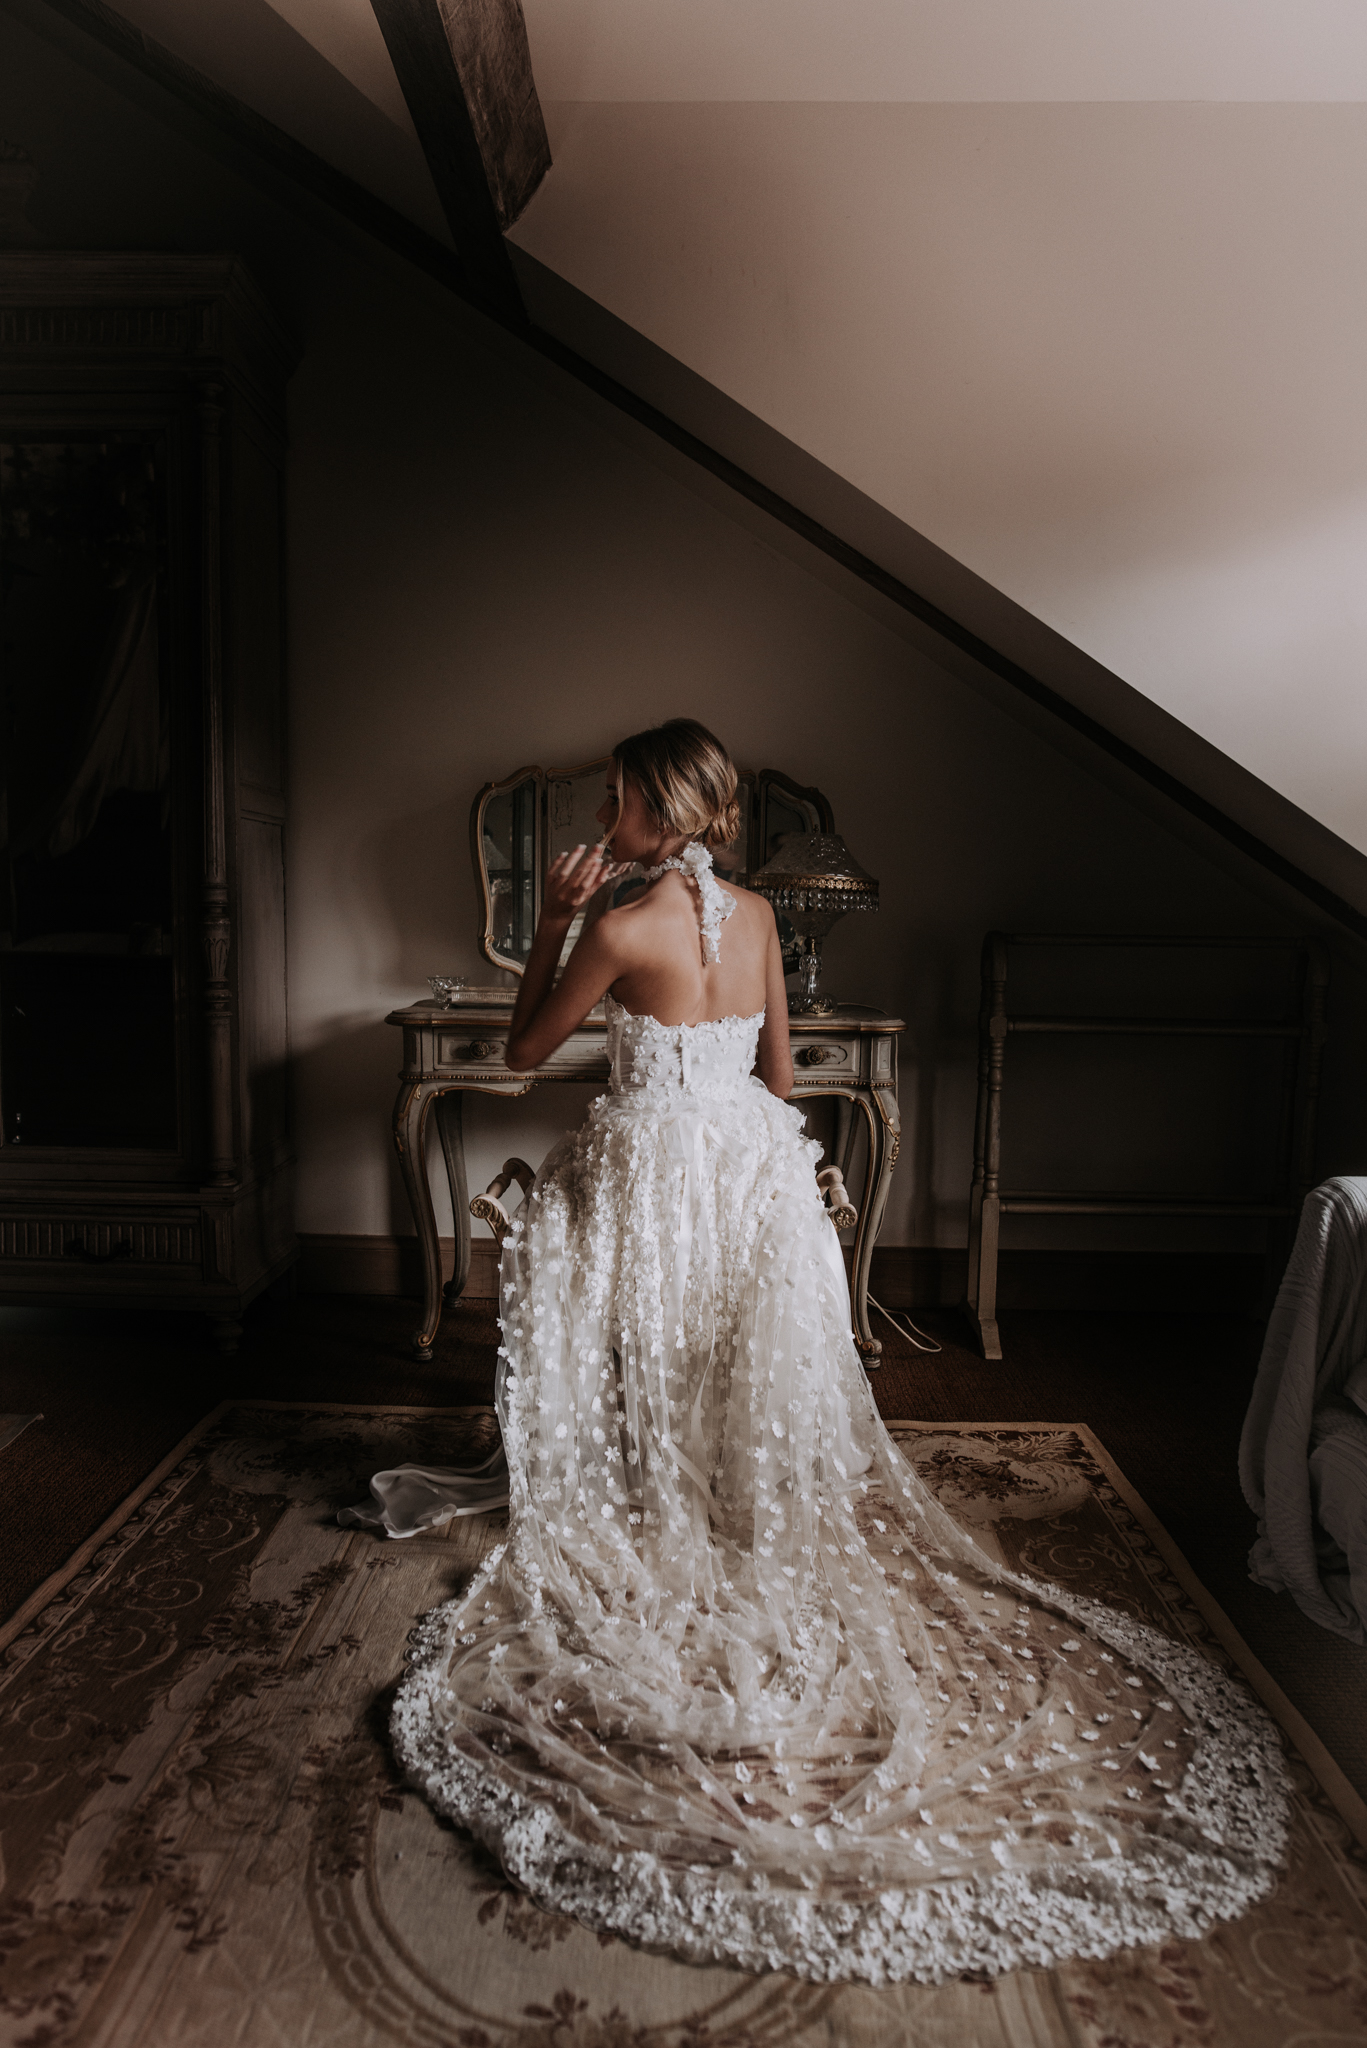 Lovelenscapes Photography X Ulyana Aster Bridal • Les Deux Belettes • Leigh McCoy • Bloodwood Botanica • Alena Iano • Alisa Rudnev • Demi Groot • Jessie Lockley • Maddison Ruby • 72.jpg